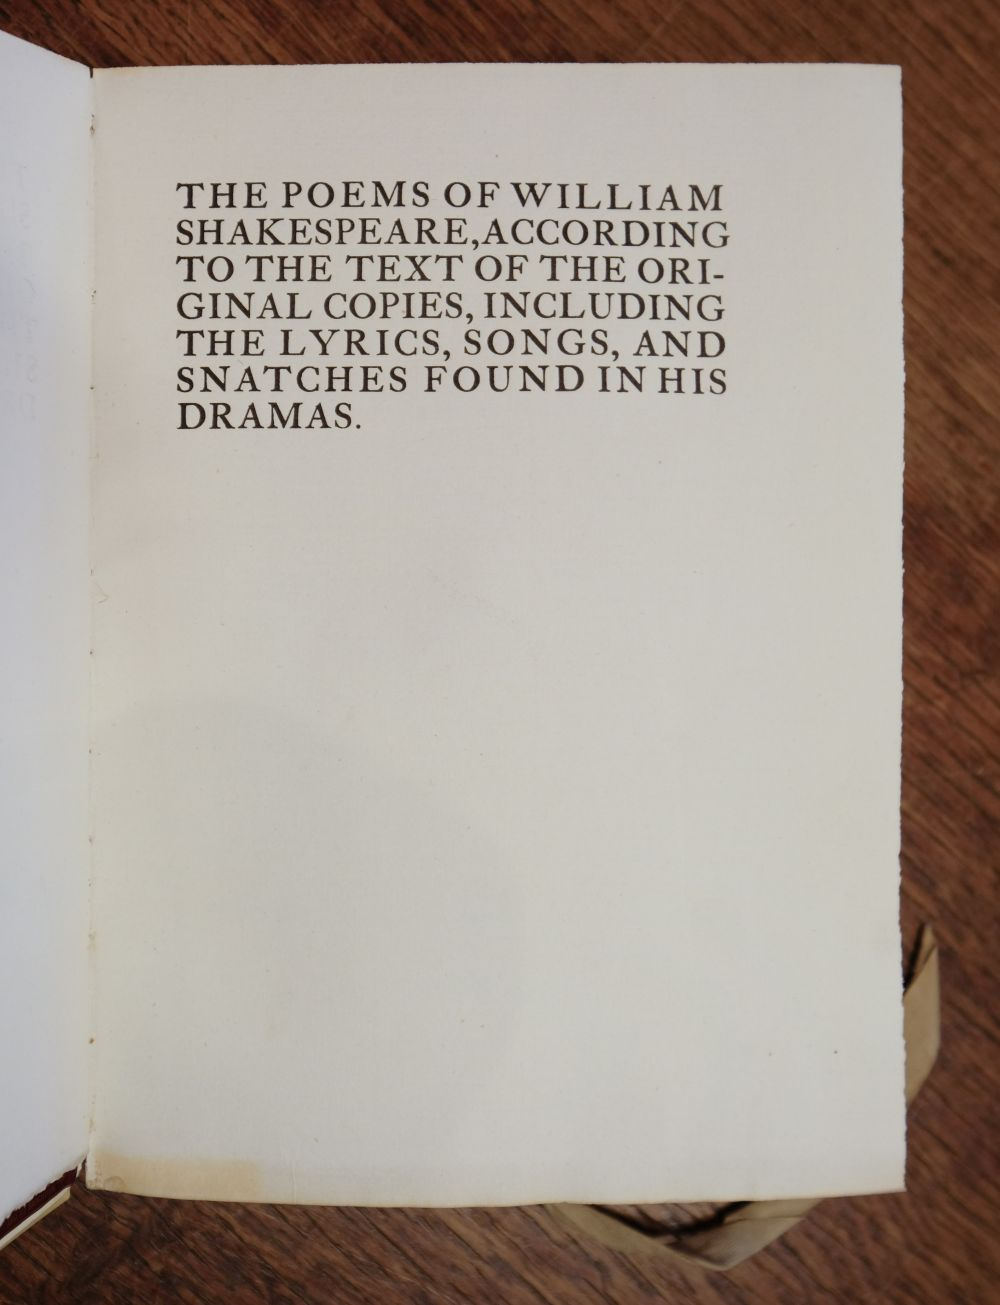 Essex House Press. The Poems of William Shakespeare, 1899 - Image 5 of 7